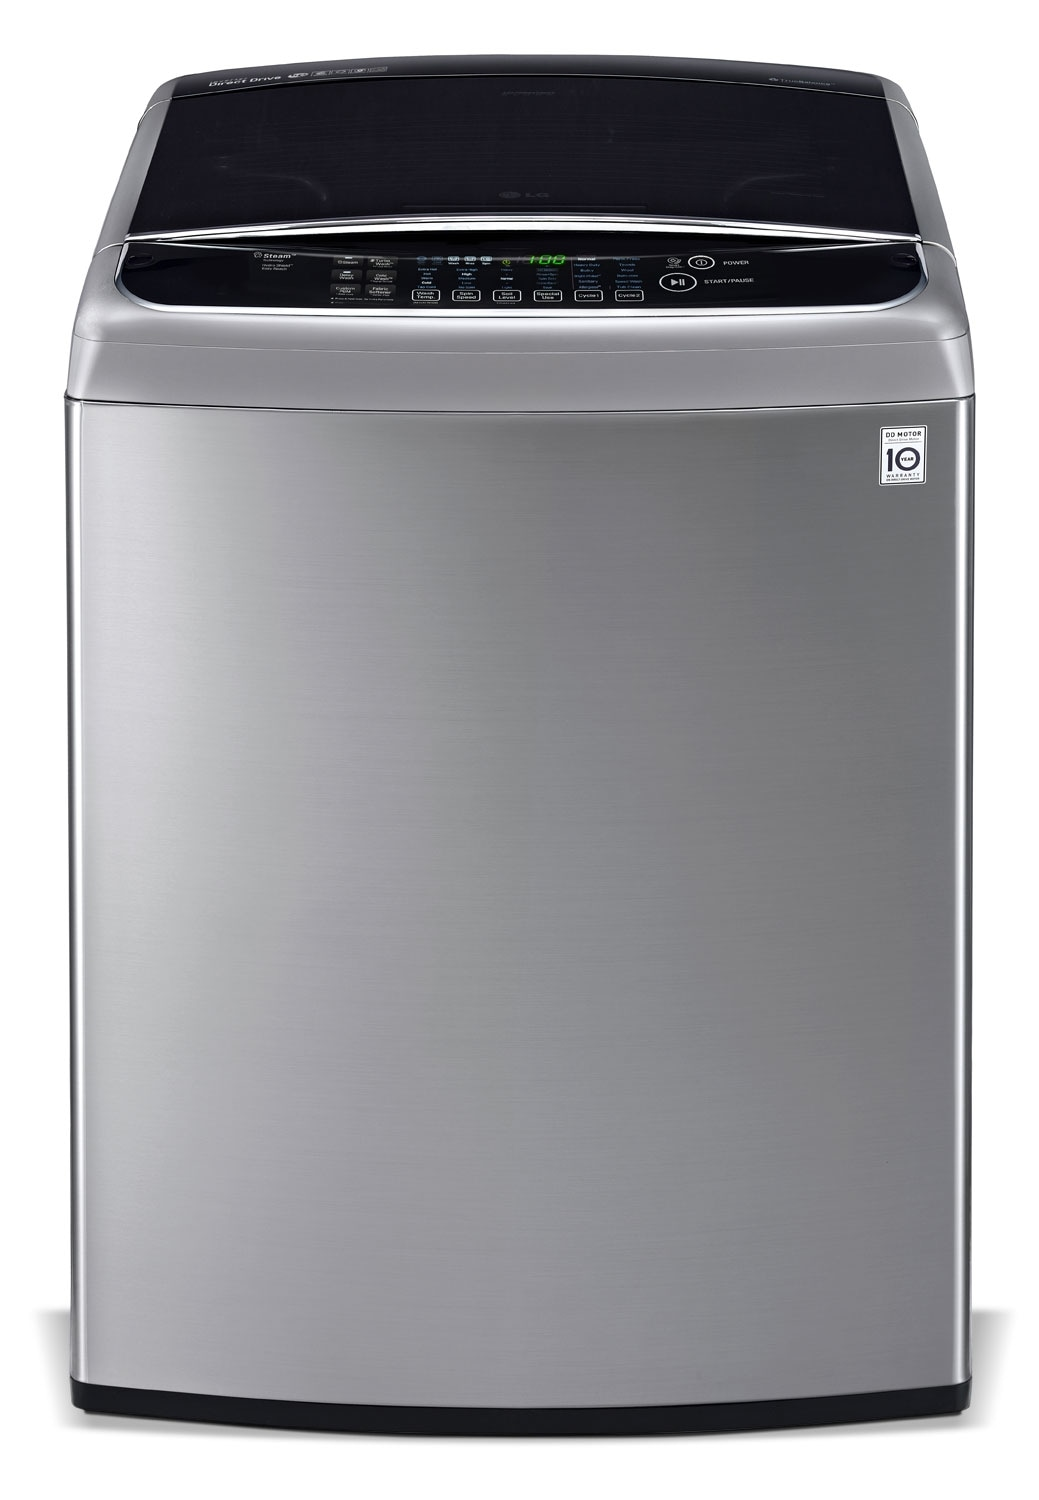 LG Appliances Graphite Steel Top-Load Washer (5.8 Cu. Ft. IEC) - WT1801HVA